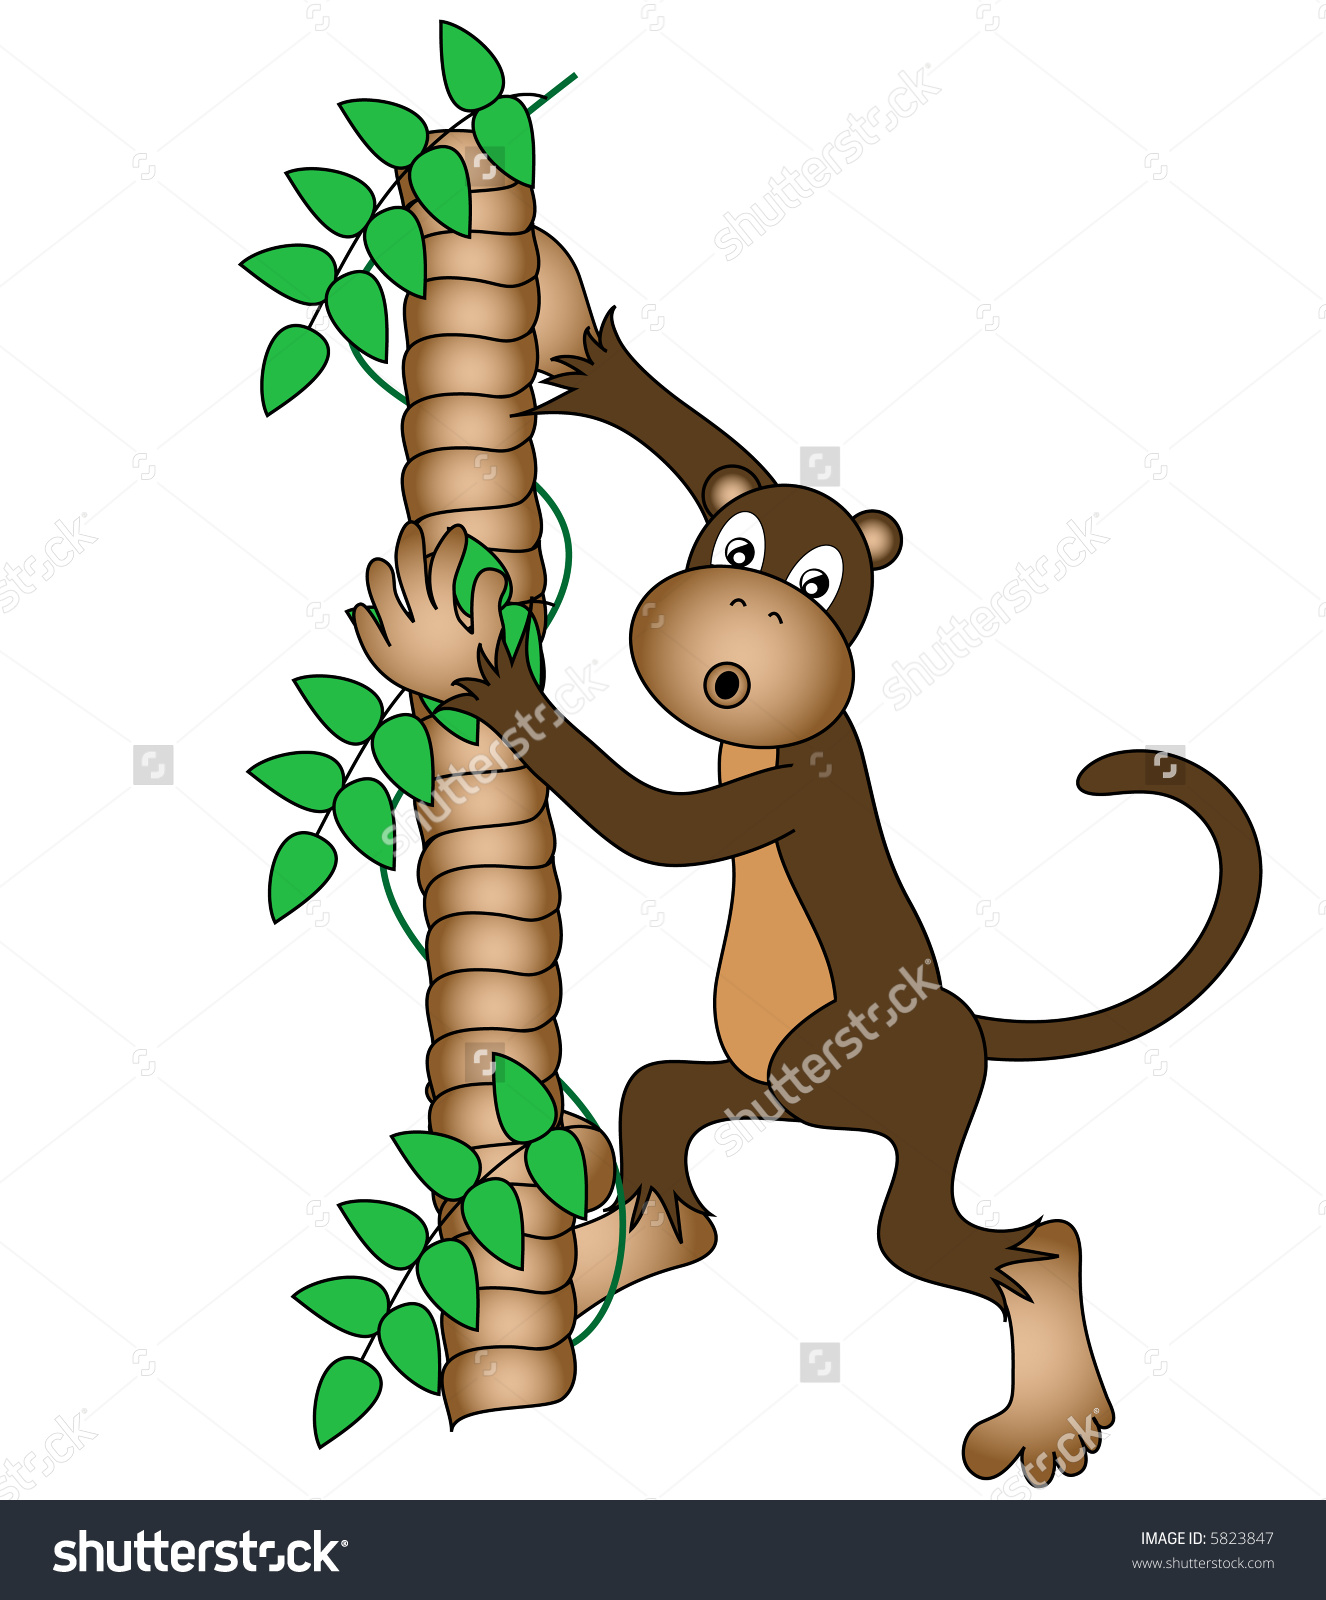 Monkey With A Confused Expression Climbing A Tree. Stock Photo.